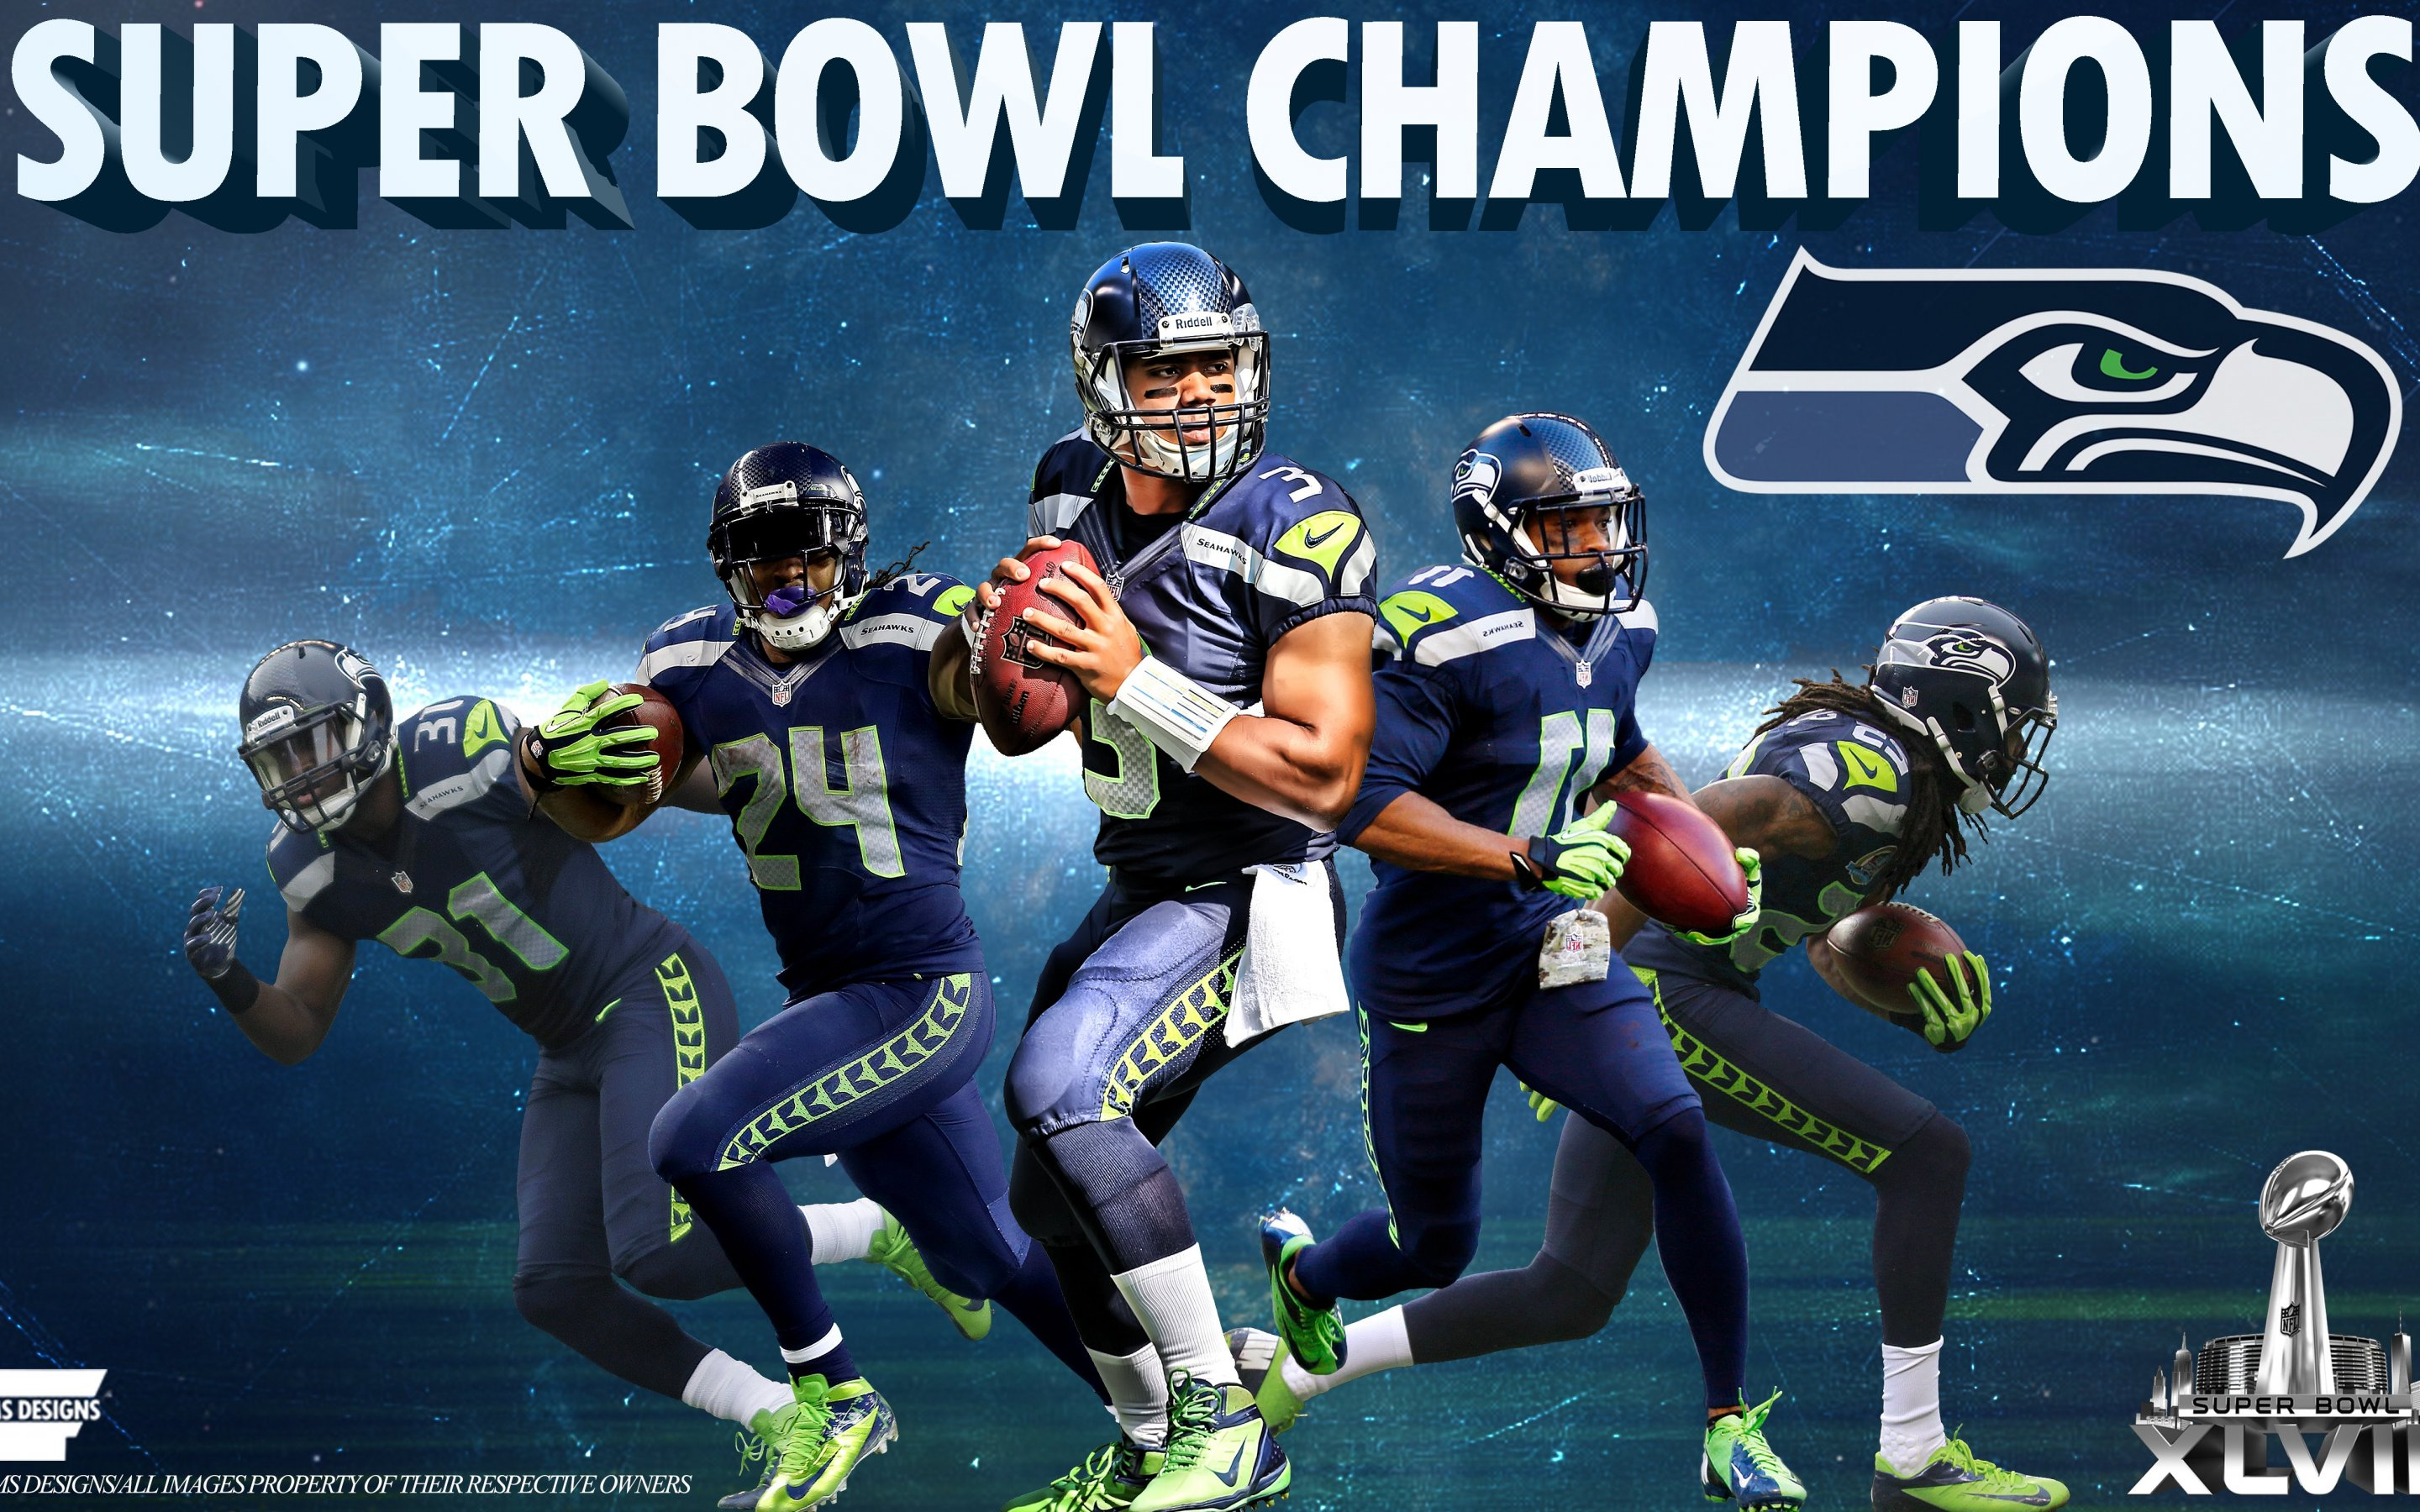 The top teams in Madden NFL 15